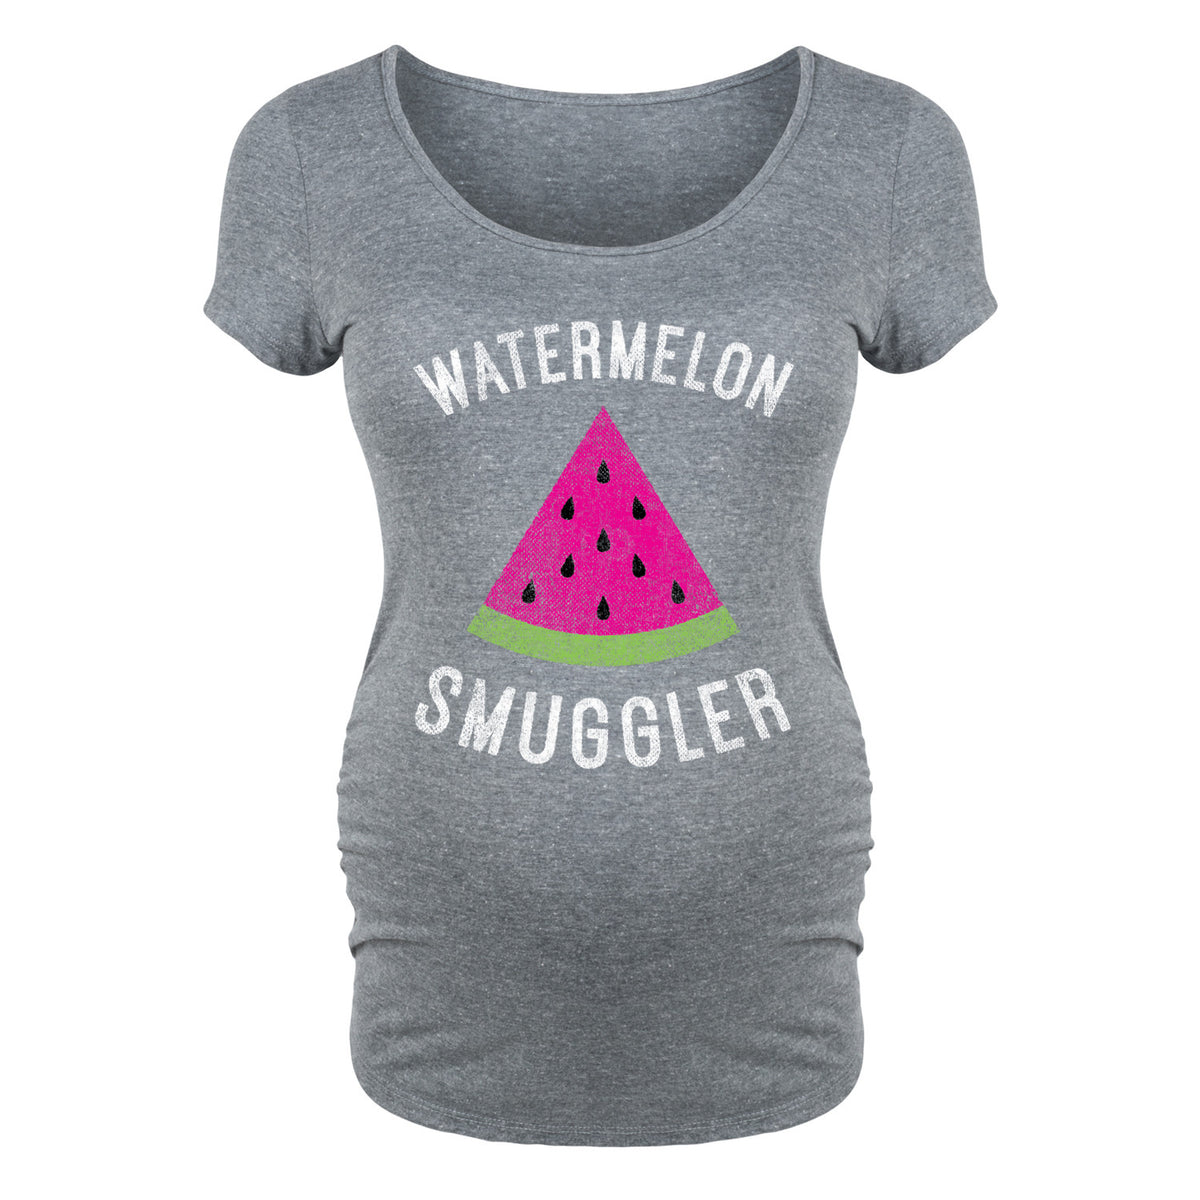 Watermelon Smuggler - Maternity Short Sleeve T-Shirt